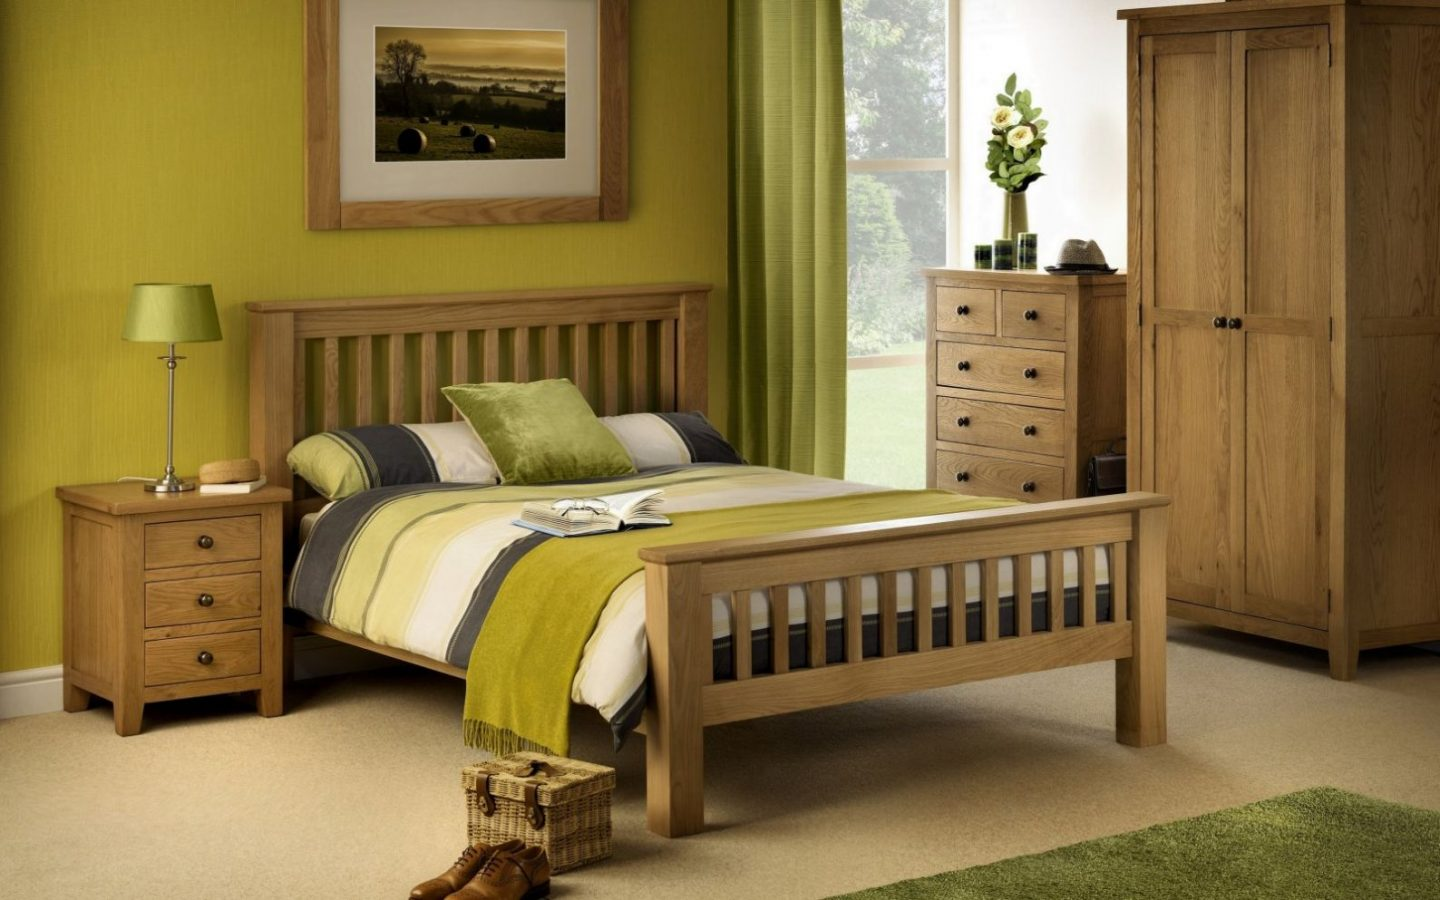 Marlborough Bedroom Range